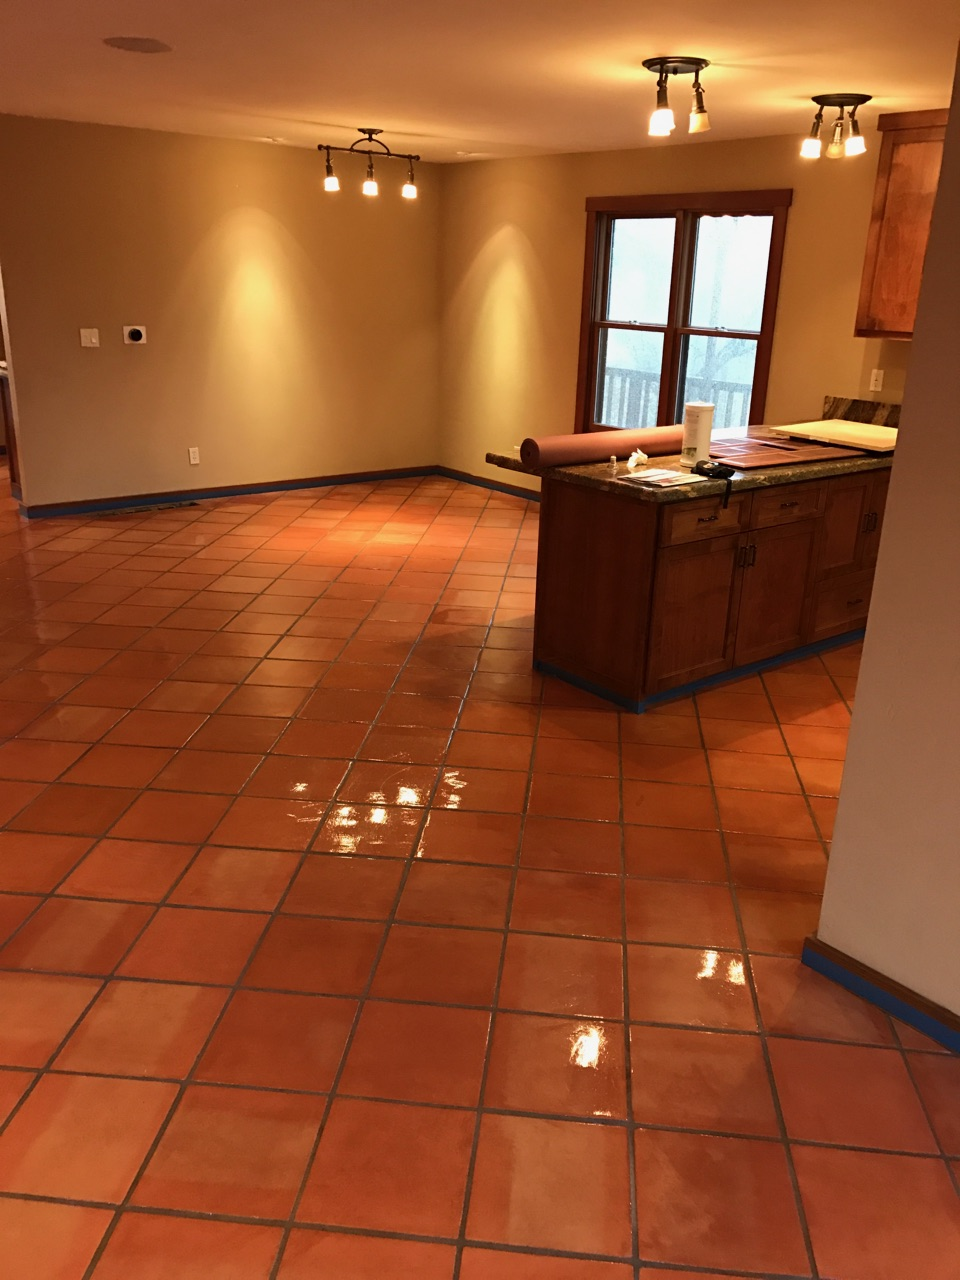 Why cleaning saltillo tile isnt working anymore california tile to set up an appointment or get an estimate feel free to call california tile restoration and get that floor back to showroom quality doublecrazyfo Gallery